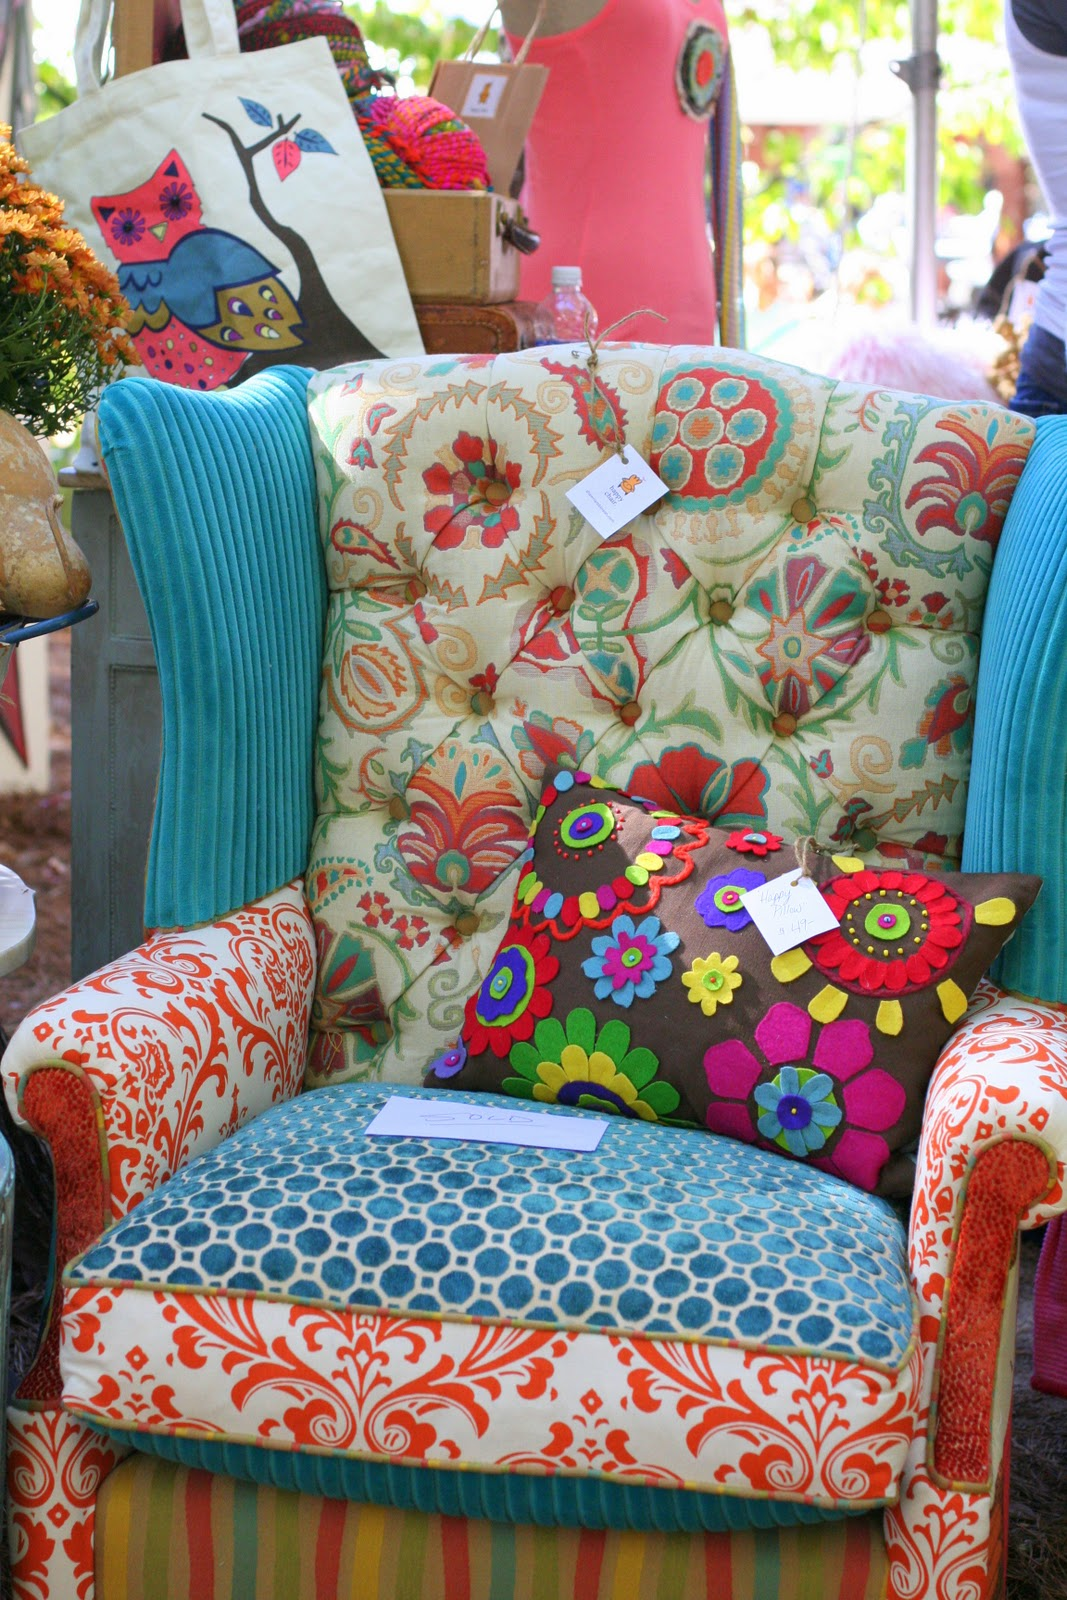 Best Reading Chair For Bad Back The Country Living Fair And Friends Paige Knudsen